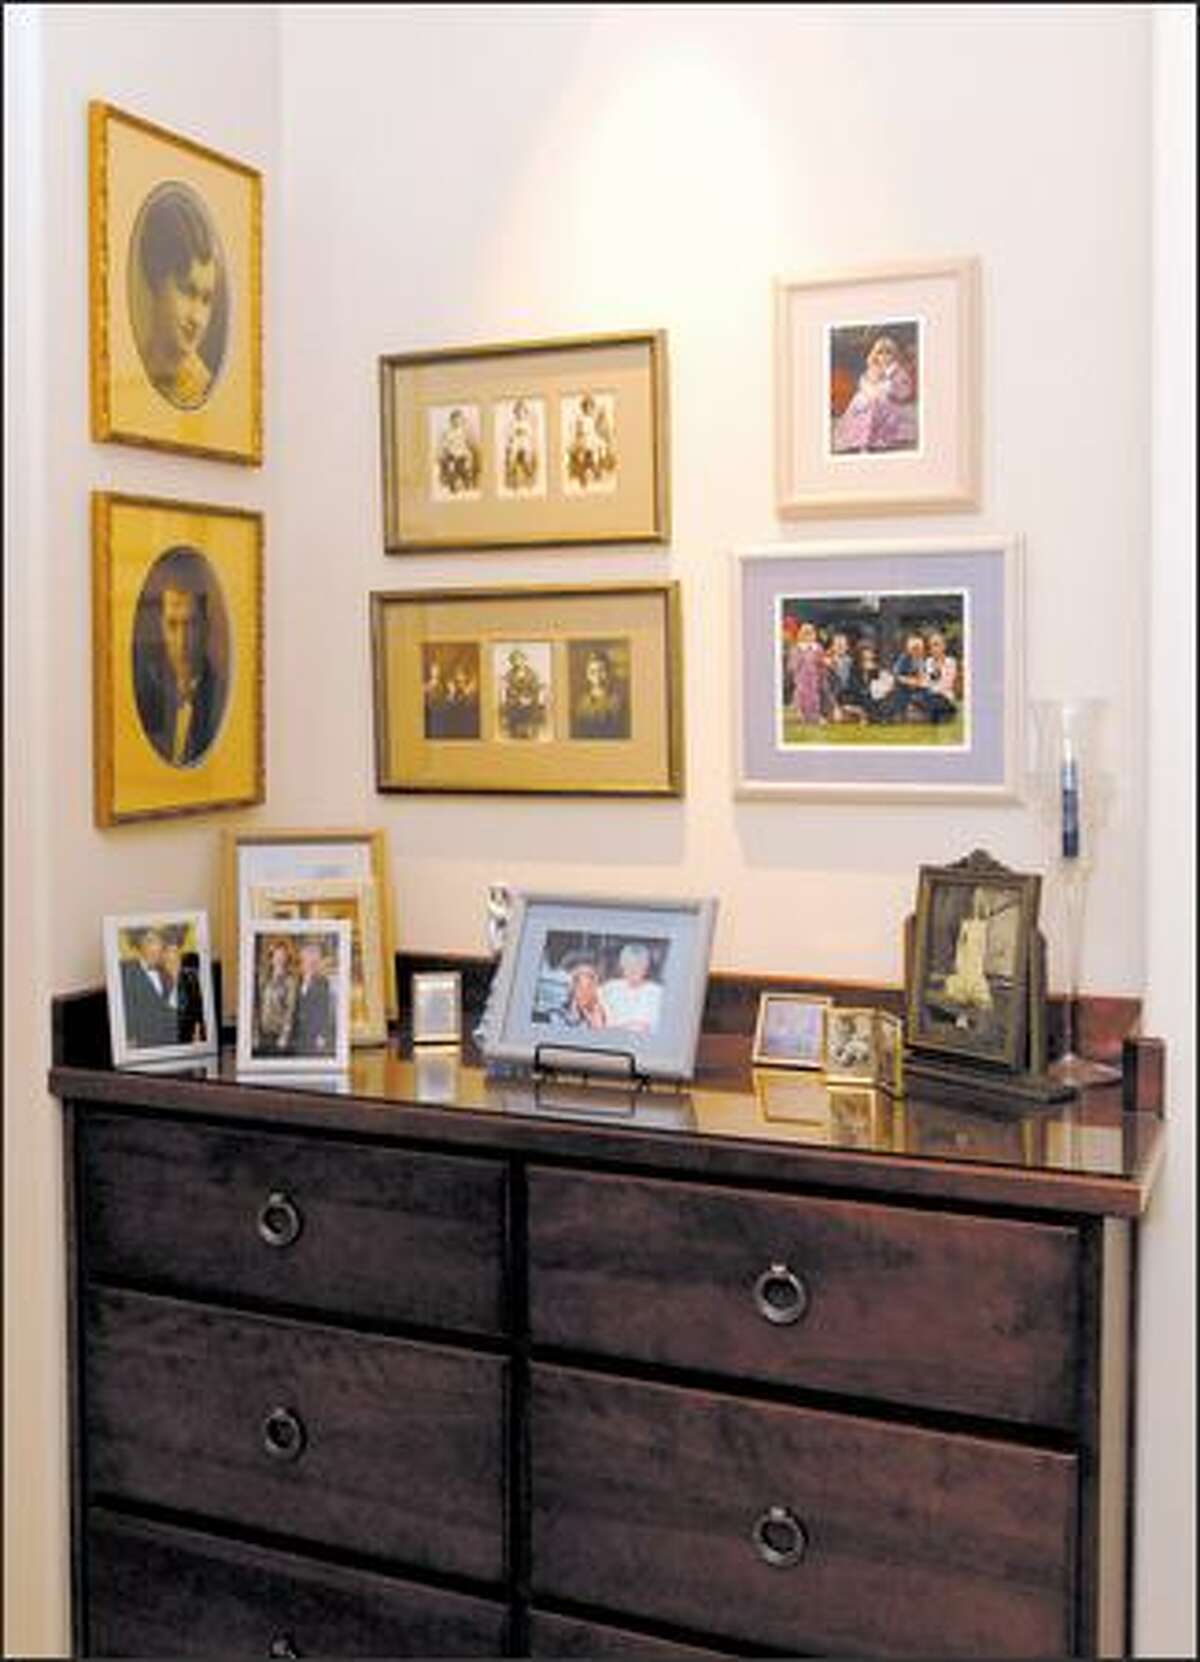 Group pictures according to frames, style and content, says John Willis, owner of Amiker Designs & Custom Framing.